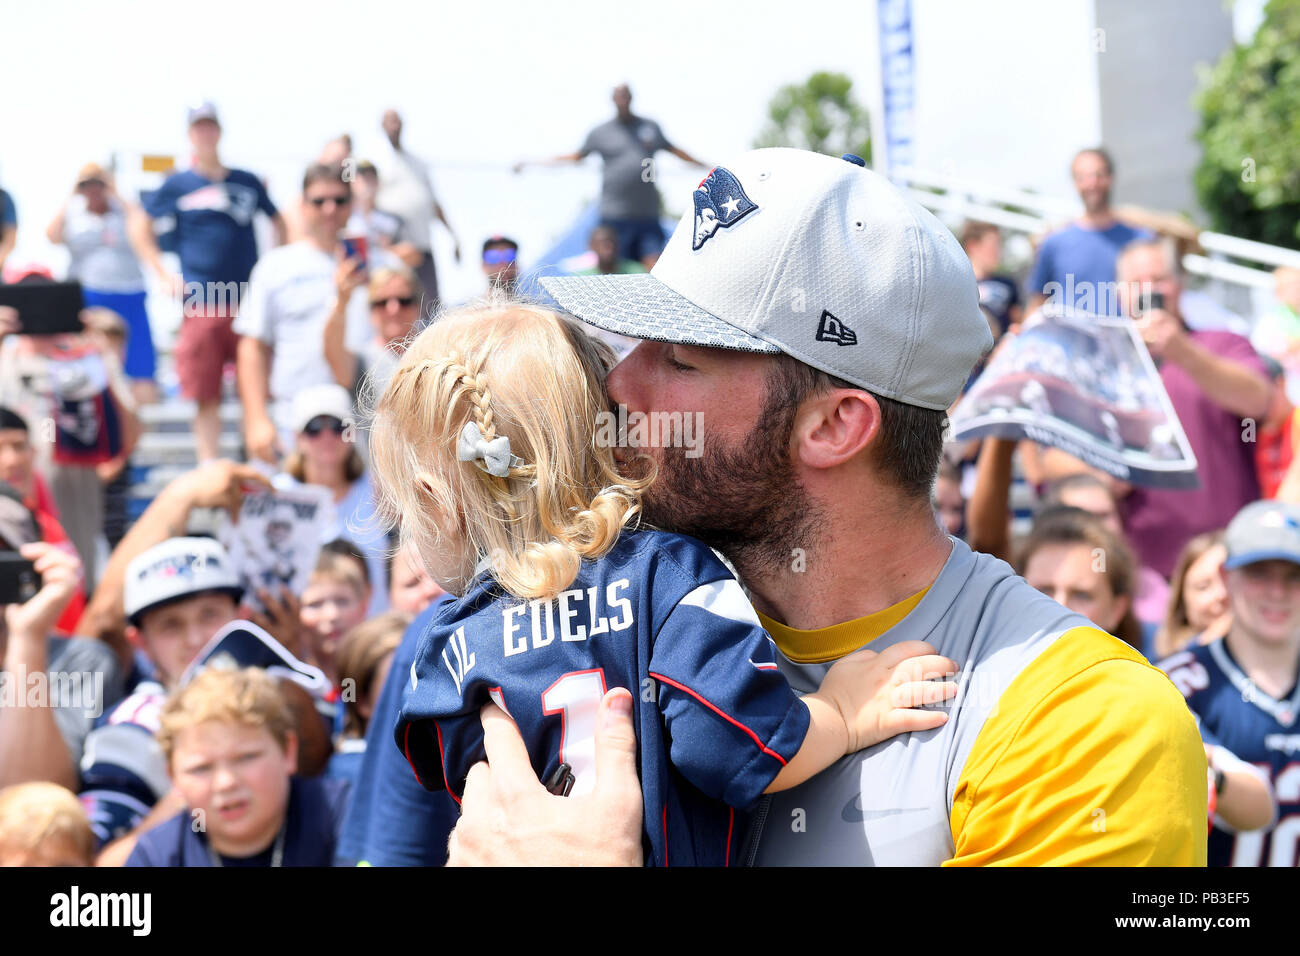 Foxborough, Massachusetts, USA. 26th July, 2018. New England Patriots wide receiver Julian Edelman (11) give his 20 month old daughter Lily Edelman a kiss at the New England Patriots training camp held on the practice fields at Gillette Stadium, in Foxborough, Massachusetts. Eric Canha/CSM/Alamy Live News - Stock Image